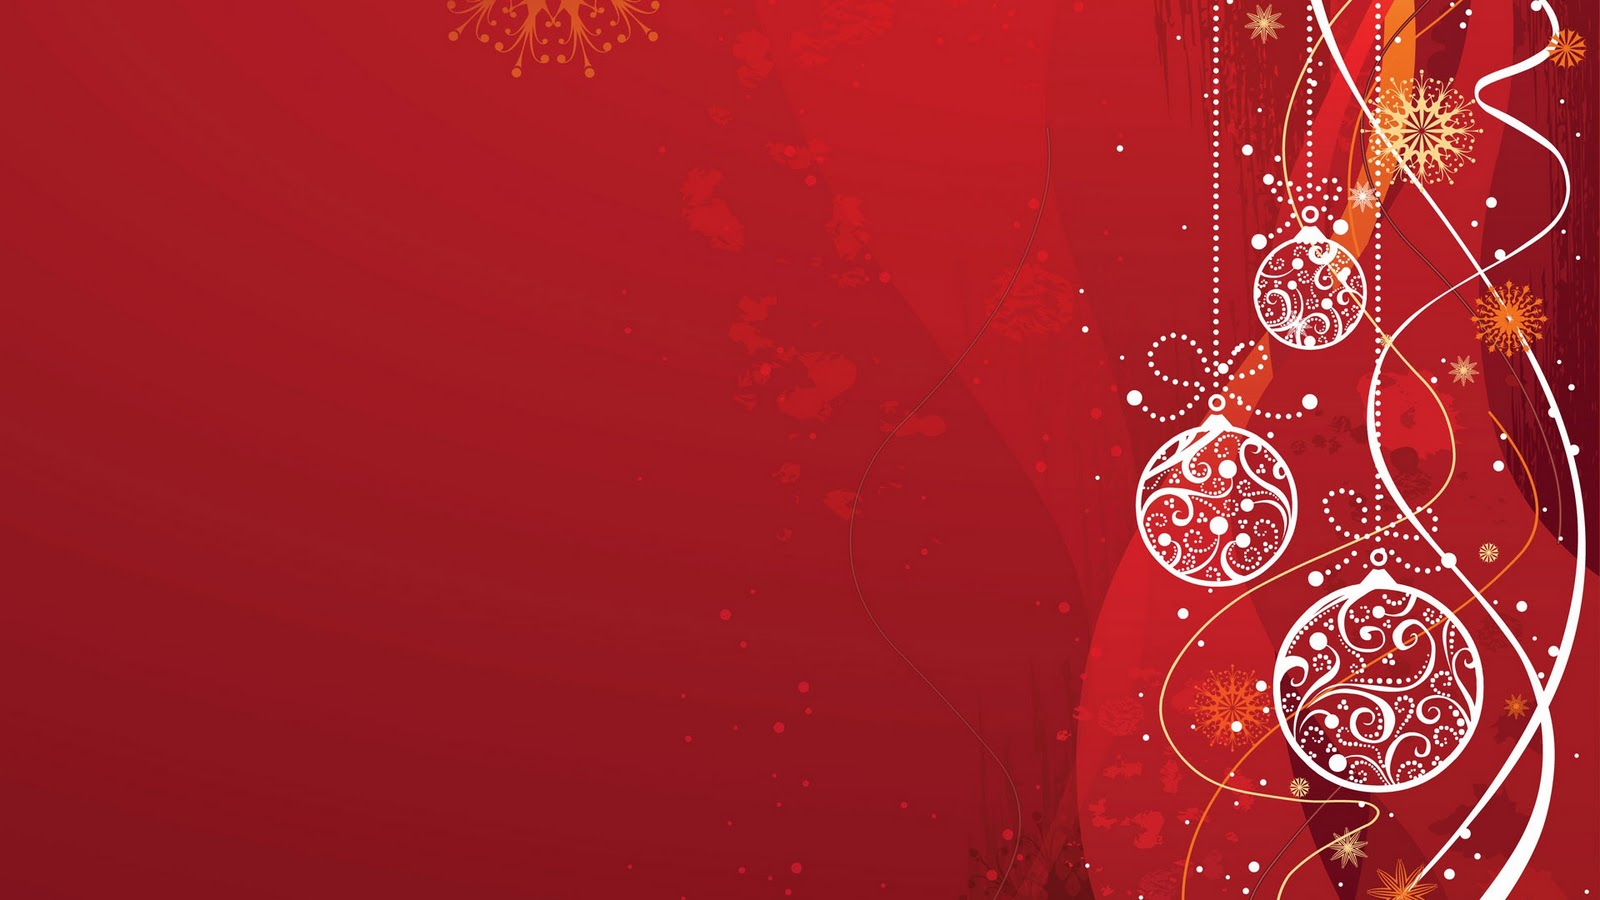 Christmas Backgrounds HD Wallpapers9 1600x900